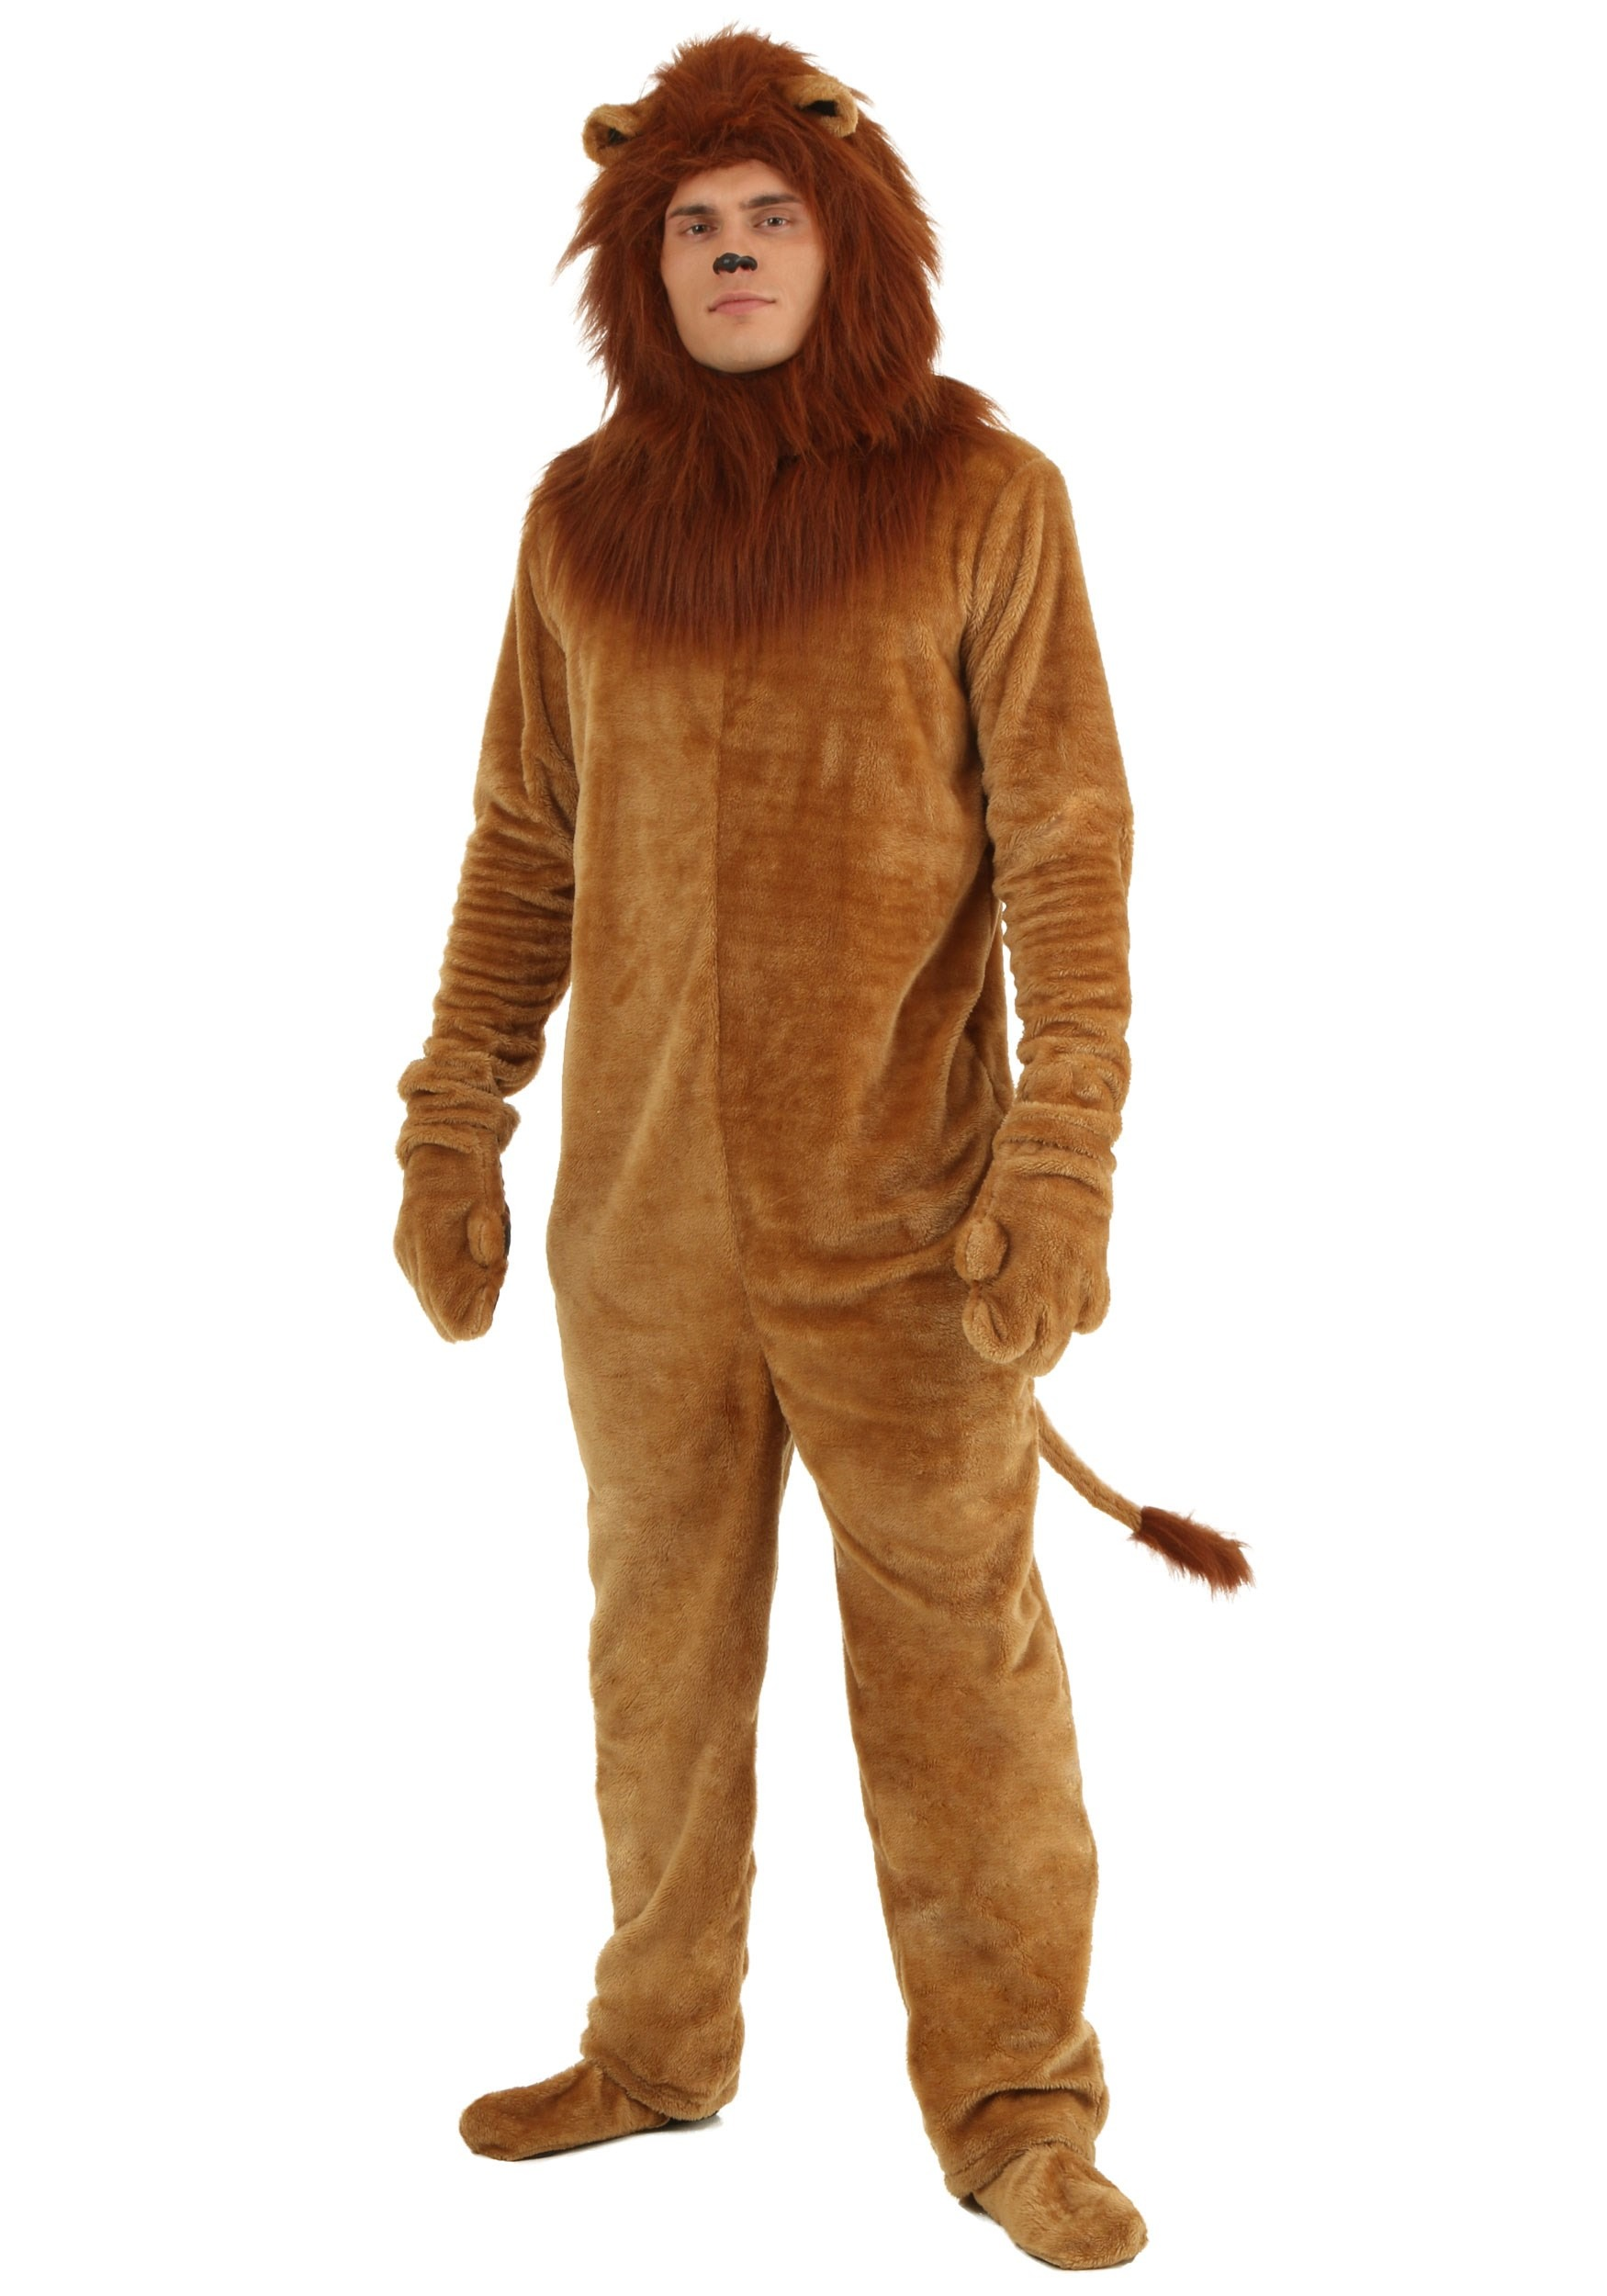 Plus size mens costumes adult plus size halloween costumes for men plus deluxe lion costume solutioingenieria Images